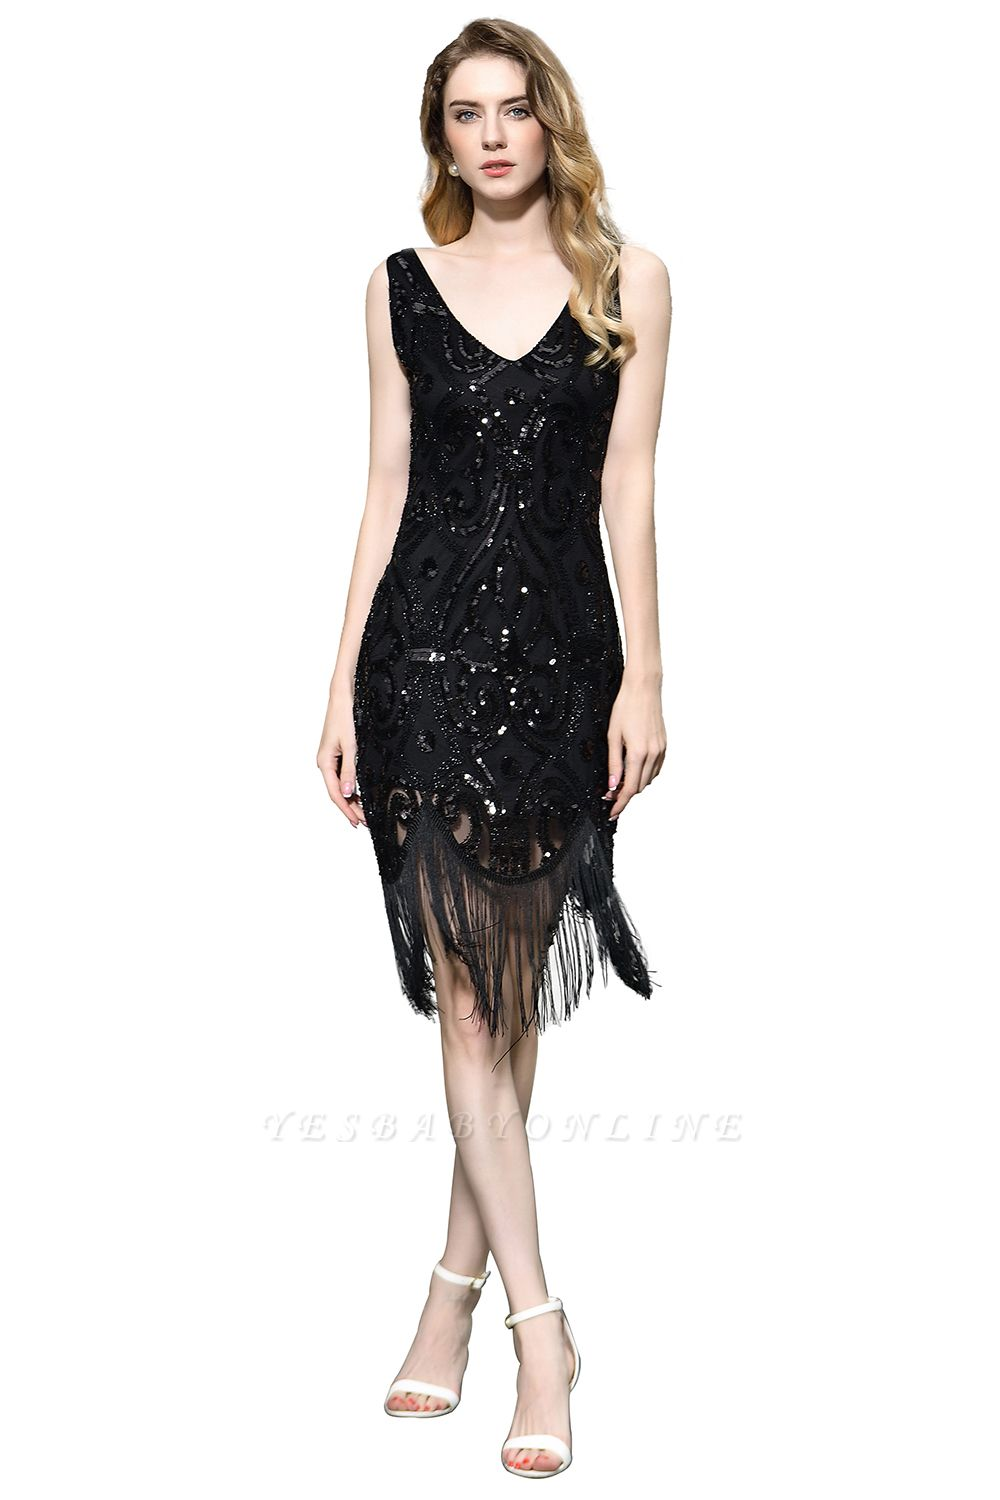 Black Straps V Neck Applique Lace Sequined Sheath Homecoming Dresses